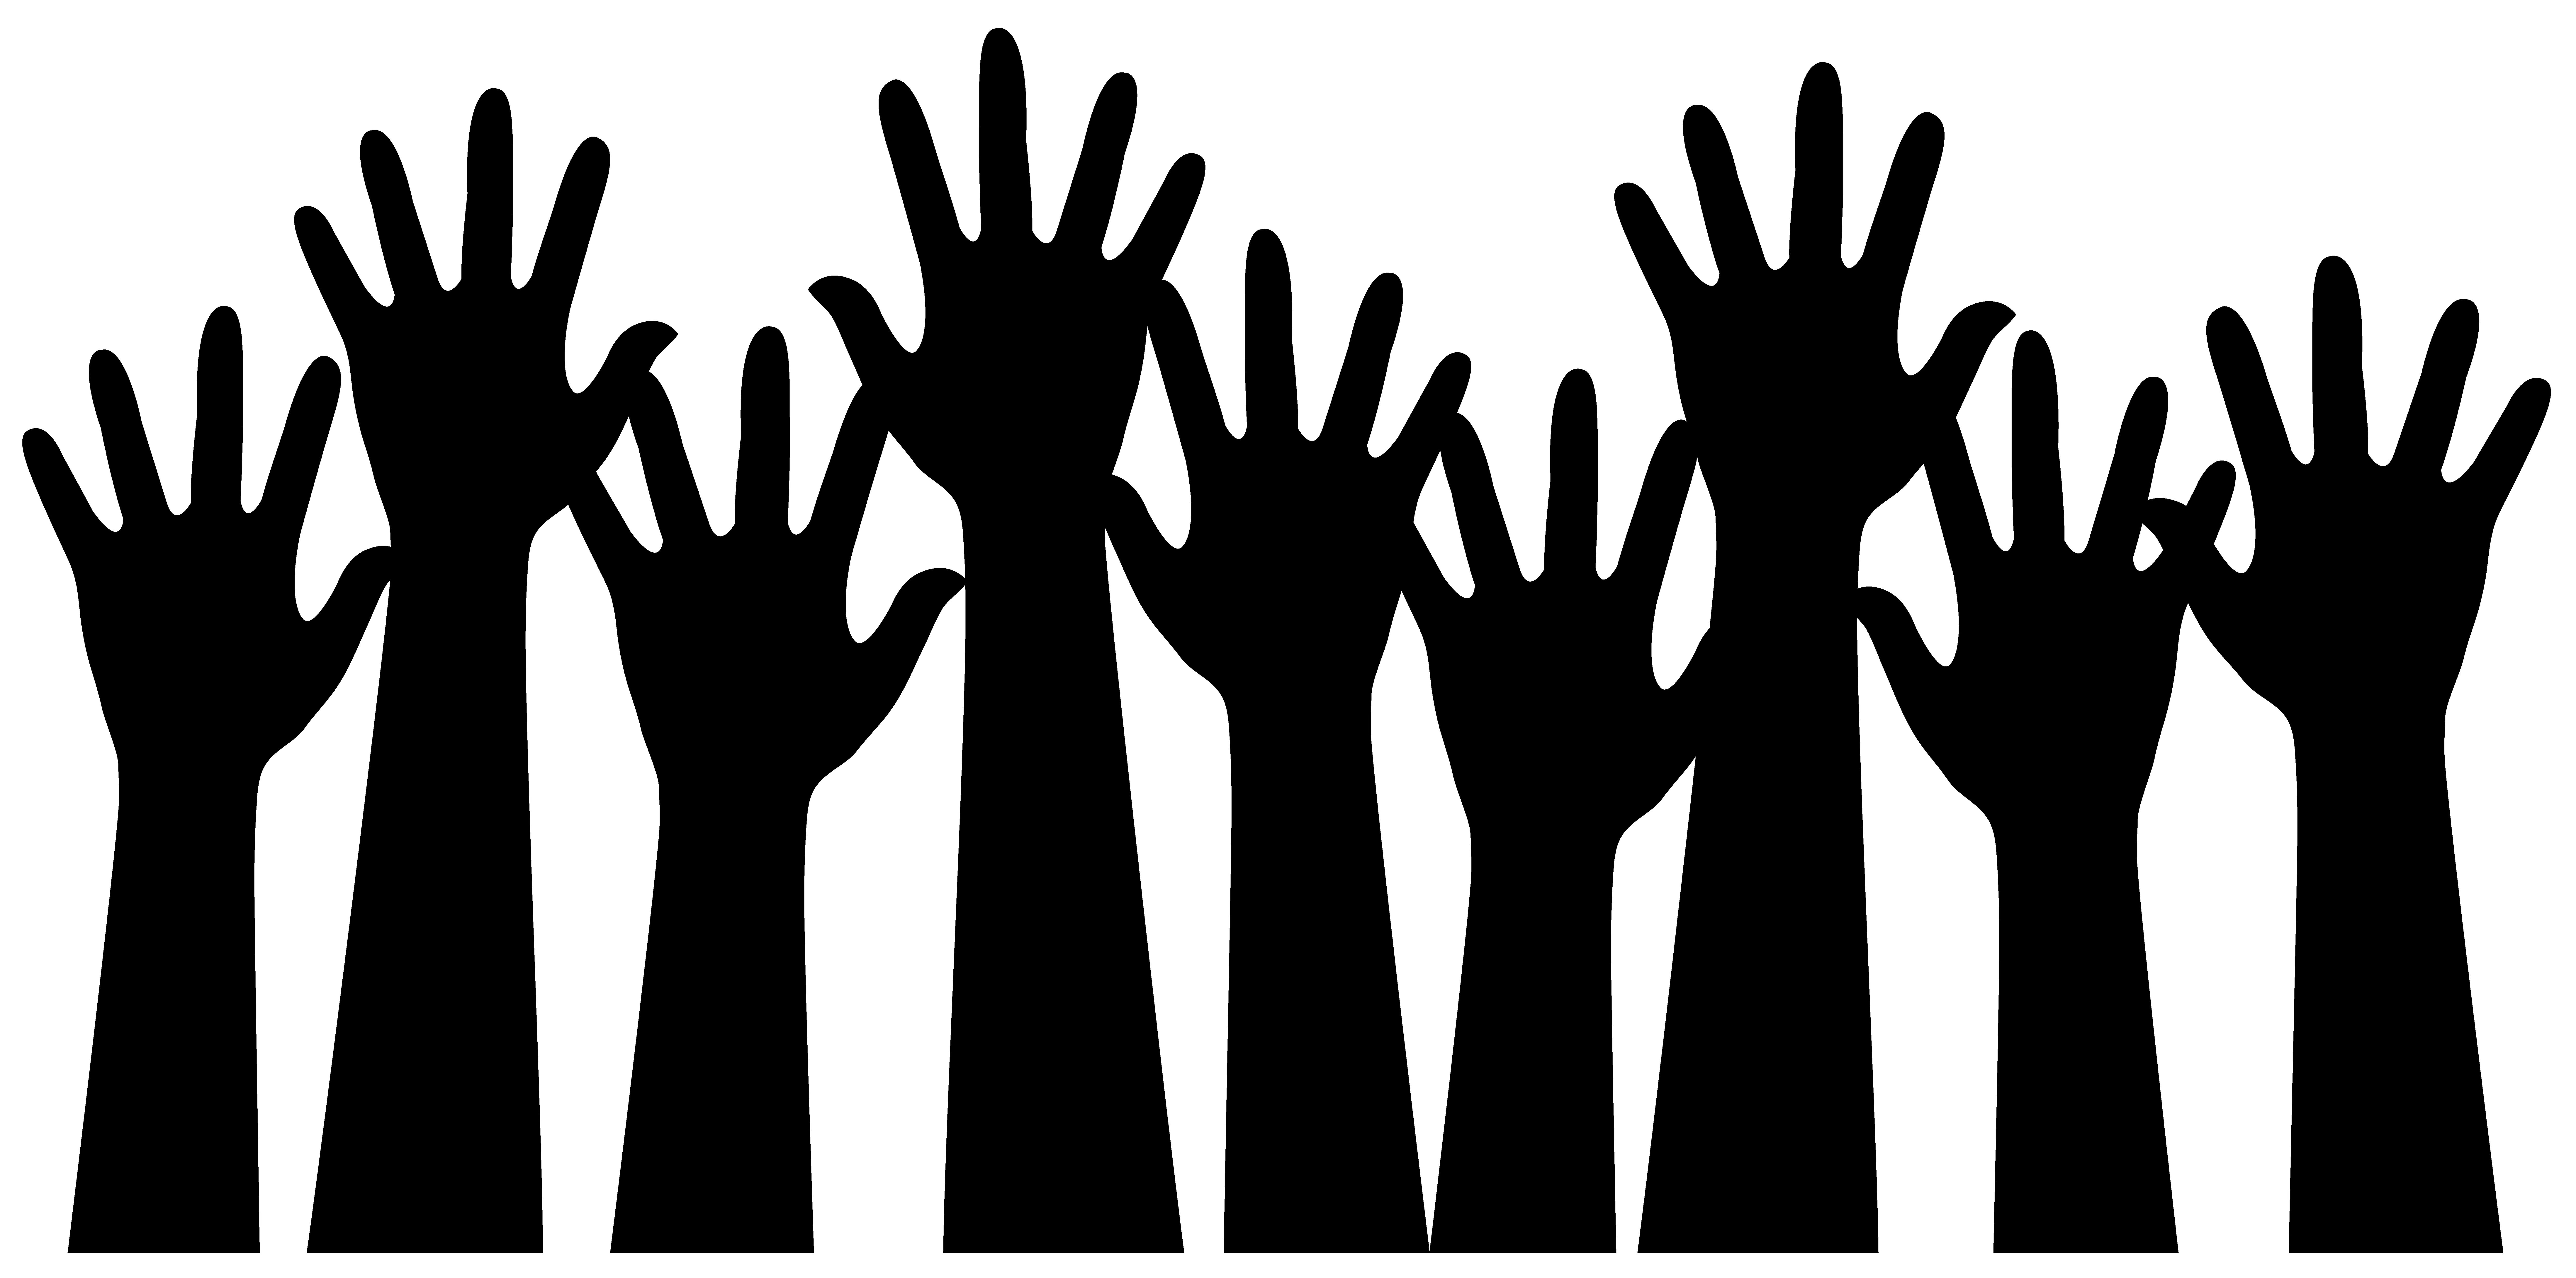 Groups of people arms raised clipart image black and white stock Their Praise was their Sacrifice (part 8) | Out of His Mouth image black and white stock